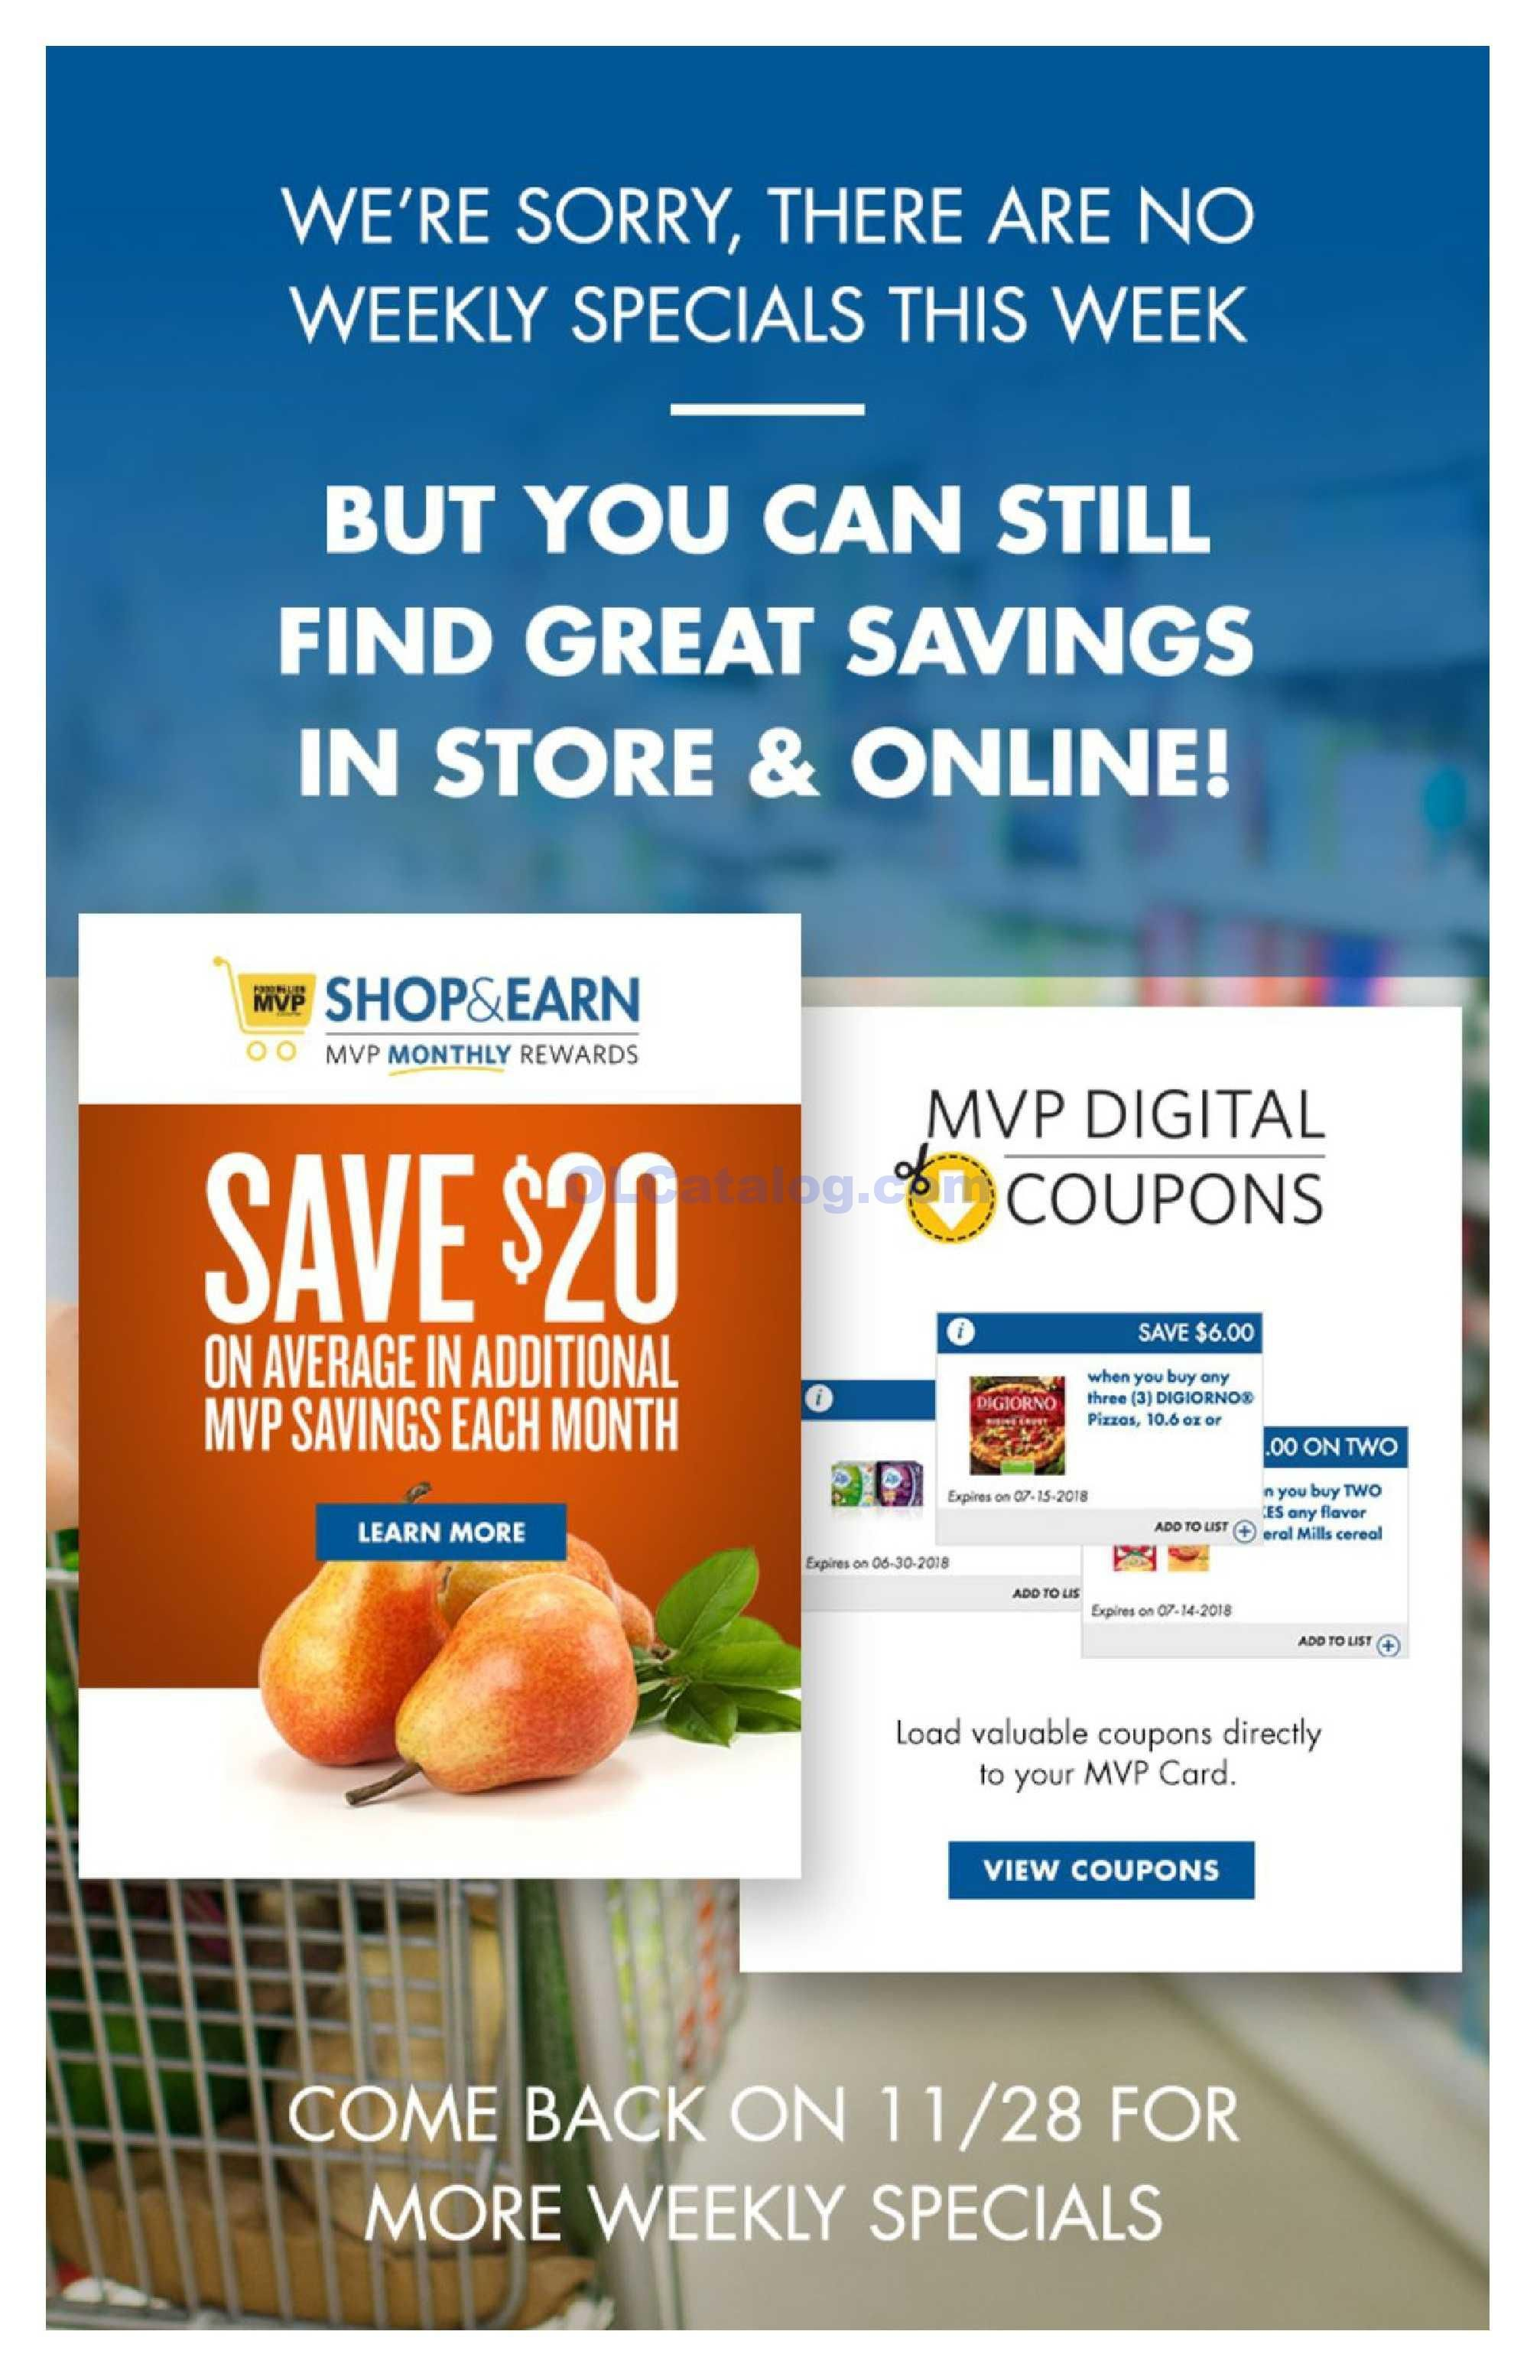 Food lion weekly ad come back 1128 do you know whats in